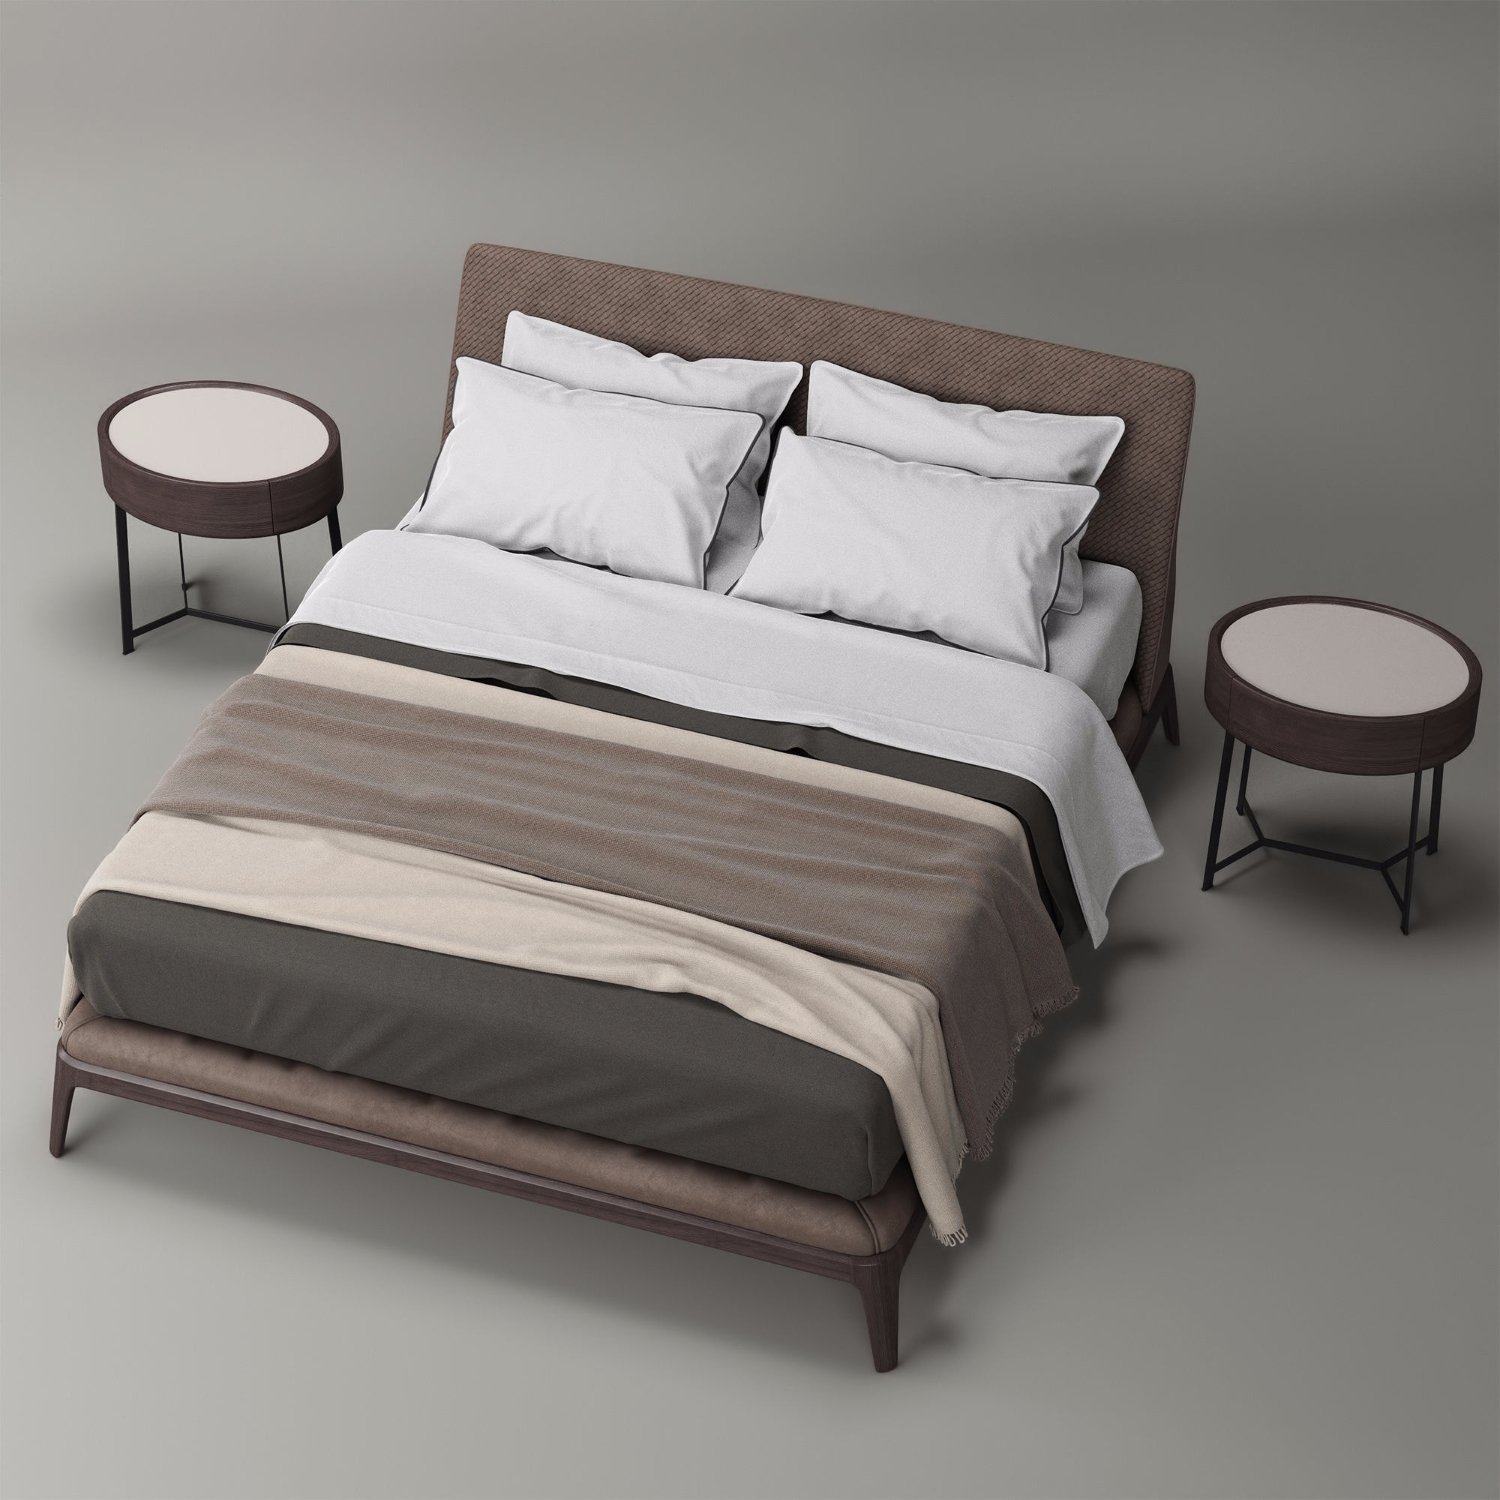 Kelly poliform beds - Letto park poliform ...